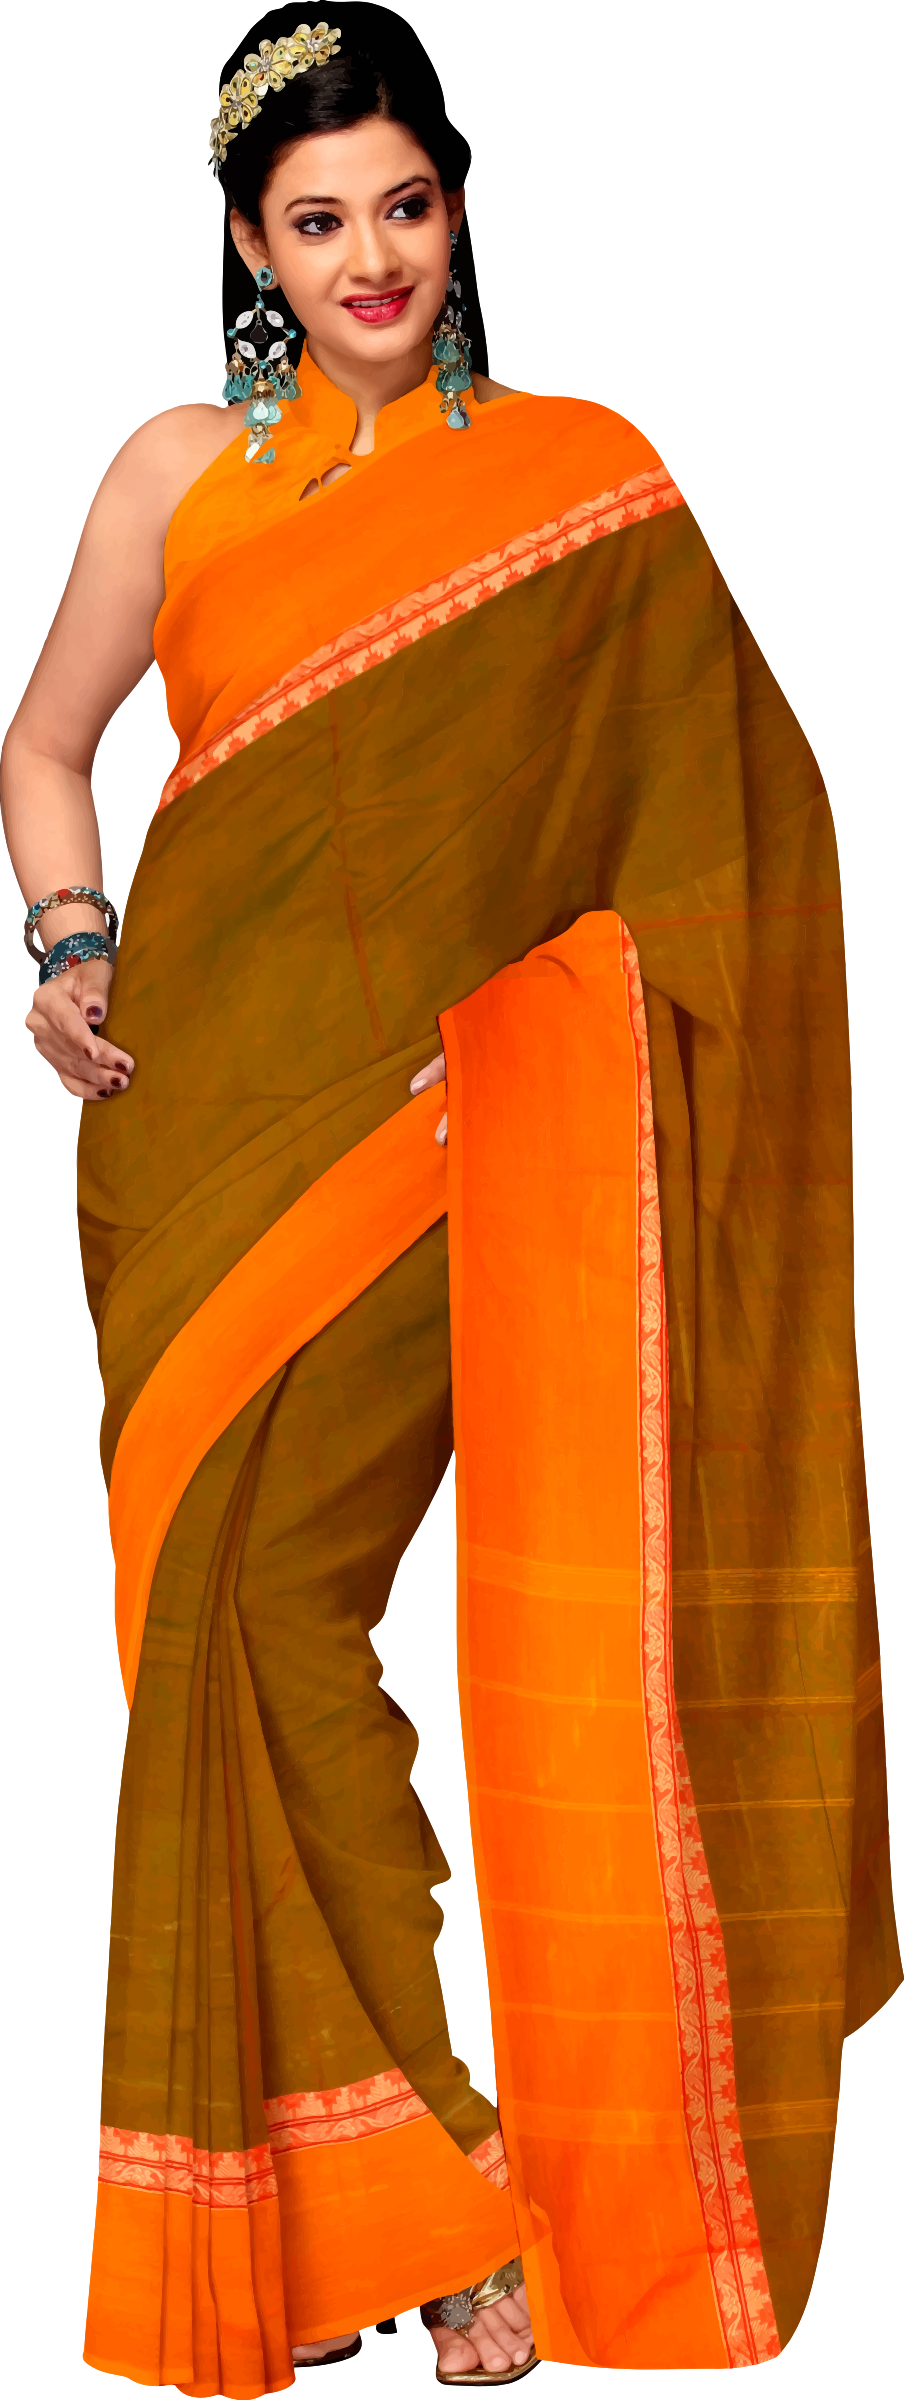 Woman in saree 4 by Firkin